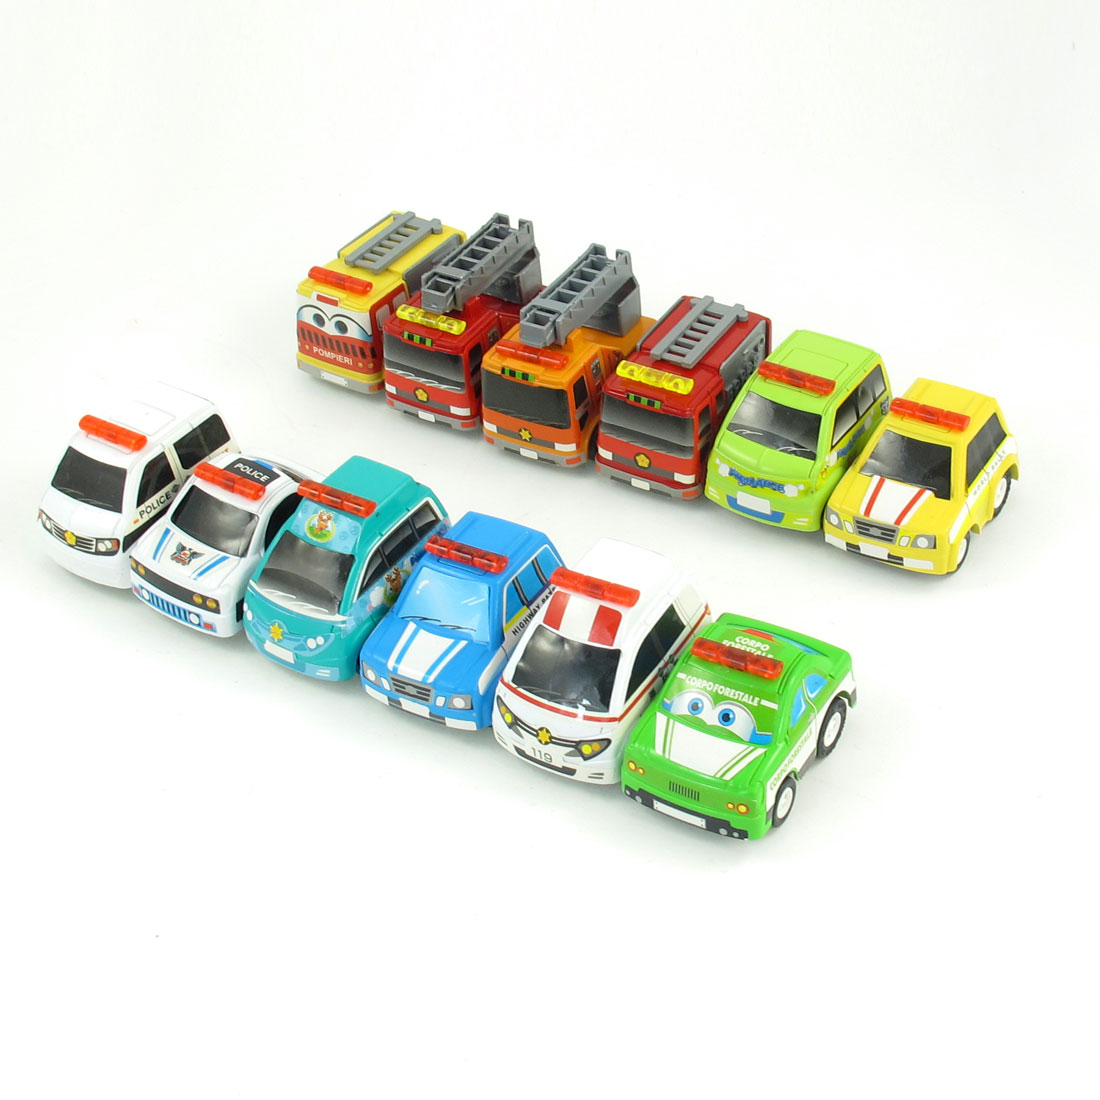 12 Pcs Assorted Colors Plastic Fire Engine Ambulance Police Car Toy for Kids